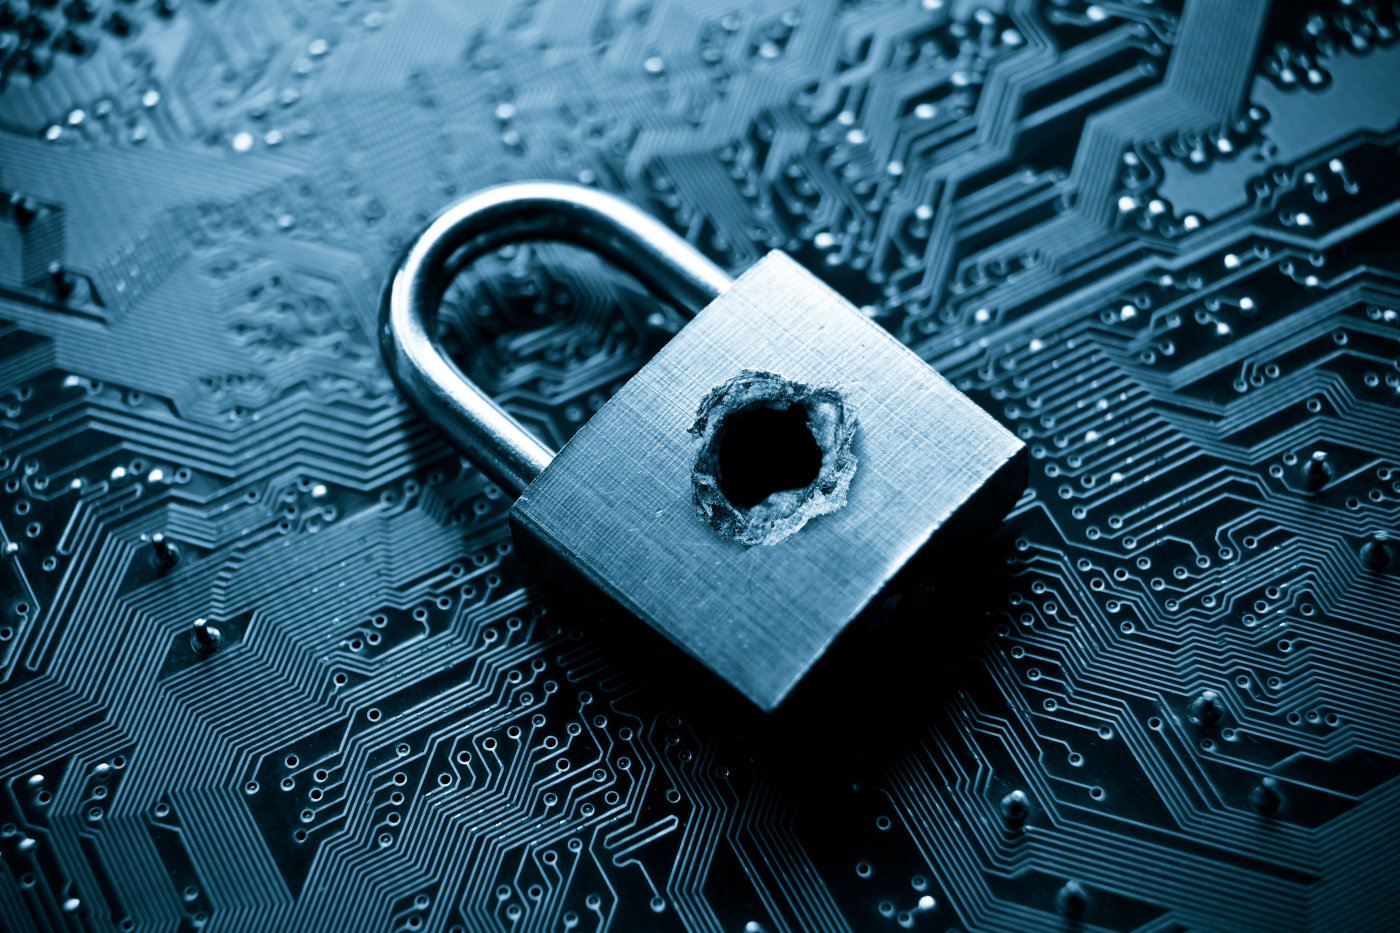 stock-photo-a-penetrated-lock-security-with-a-hole-on-computer-circuit-board-background-275967710